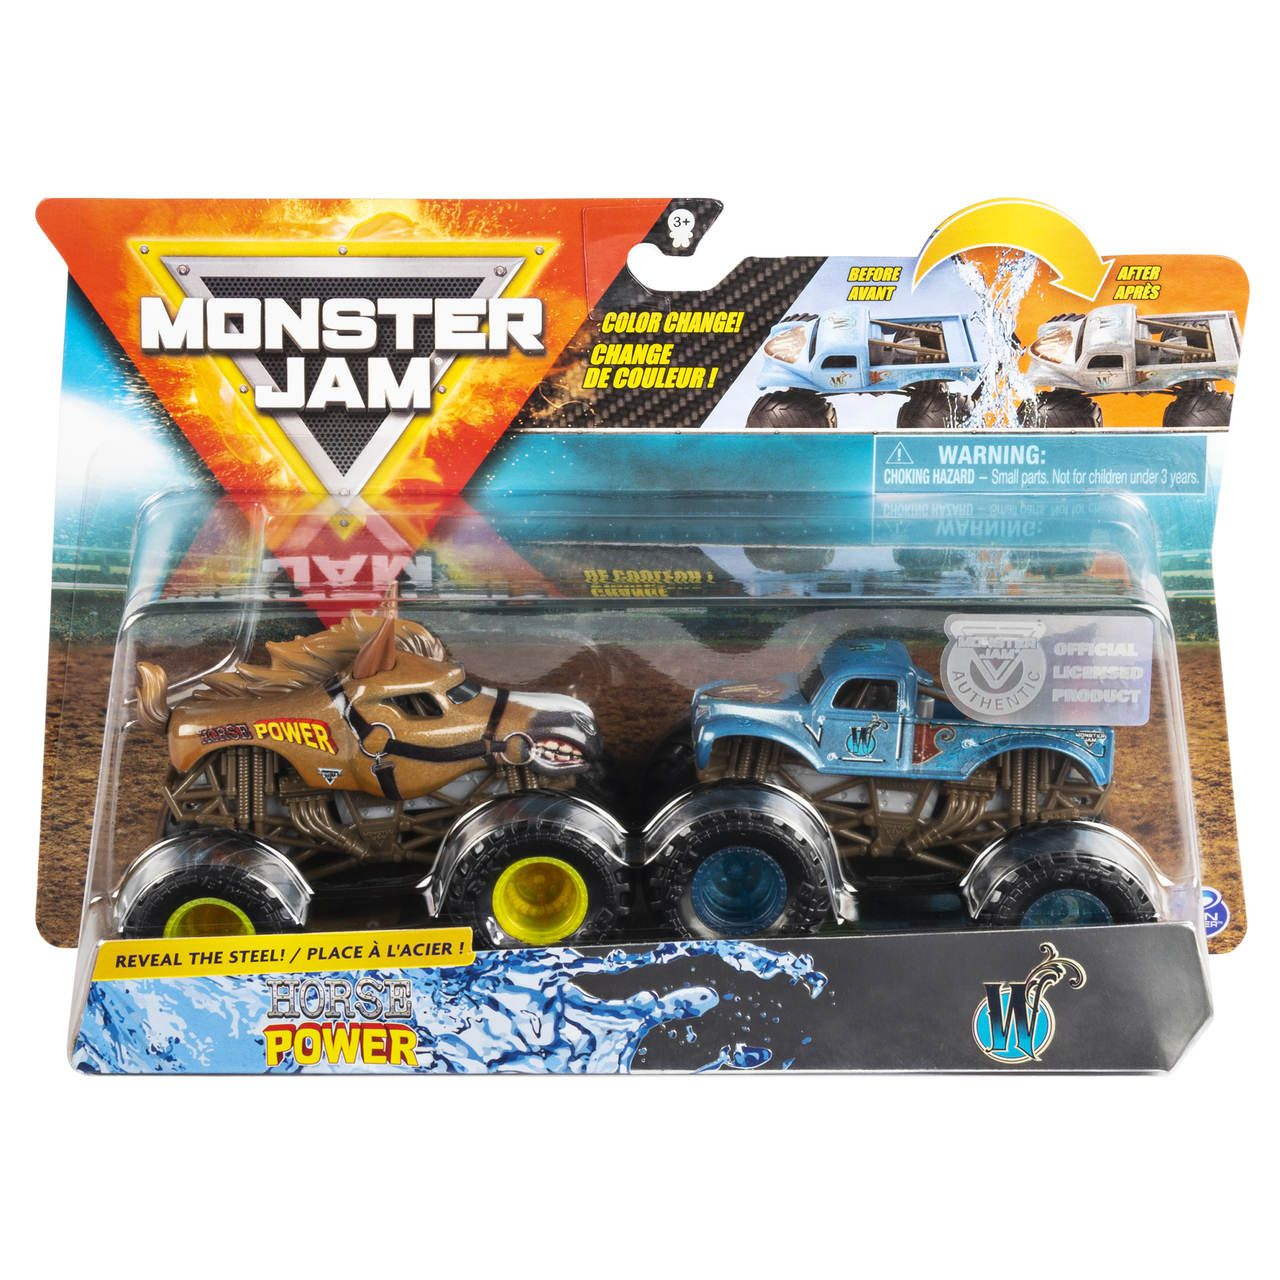 Monster Jam Truck  2 Carros - Horse Power Vs Whiplash 1:64